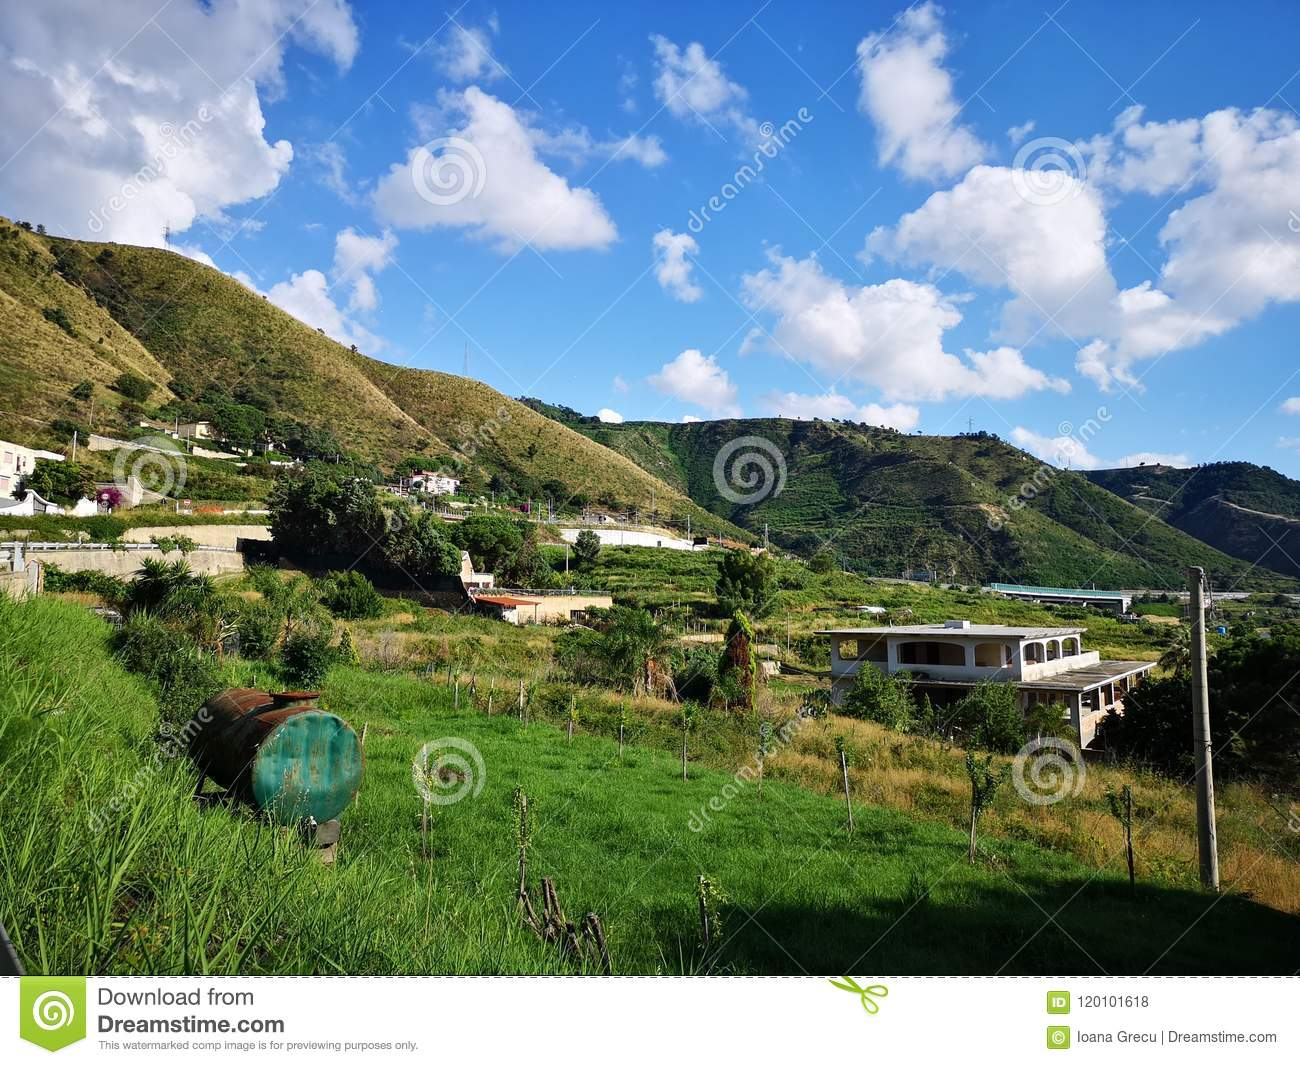 Hills in the south of Italy, Calabria